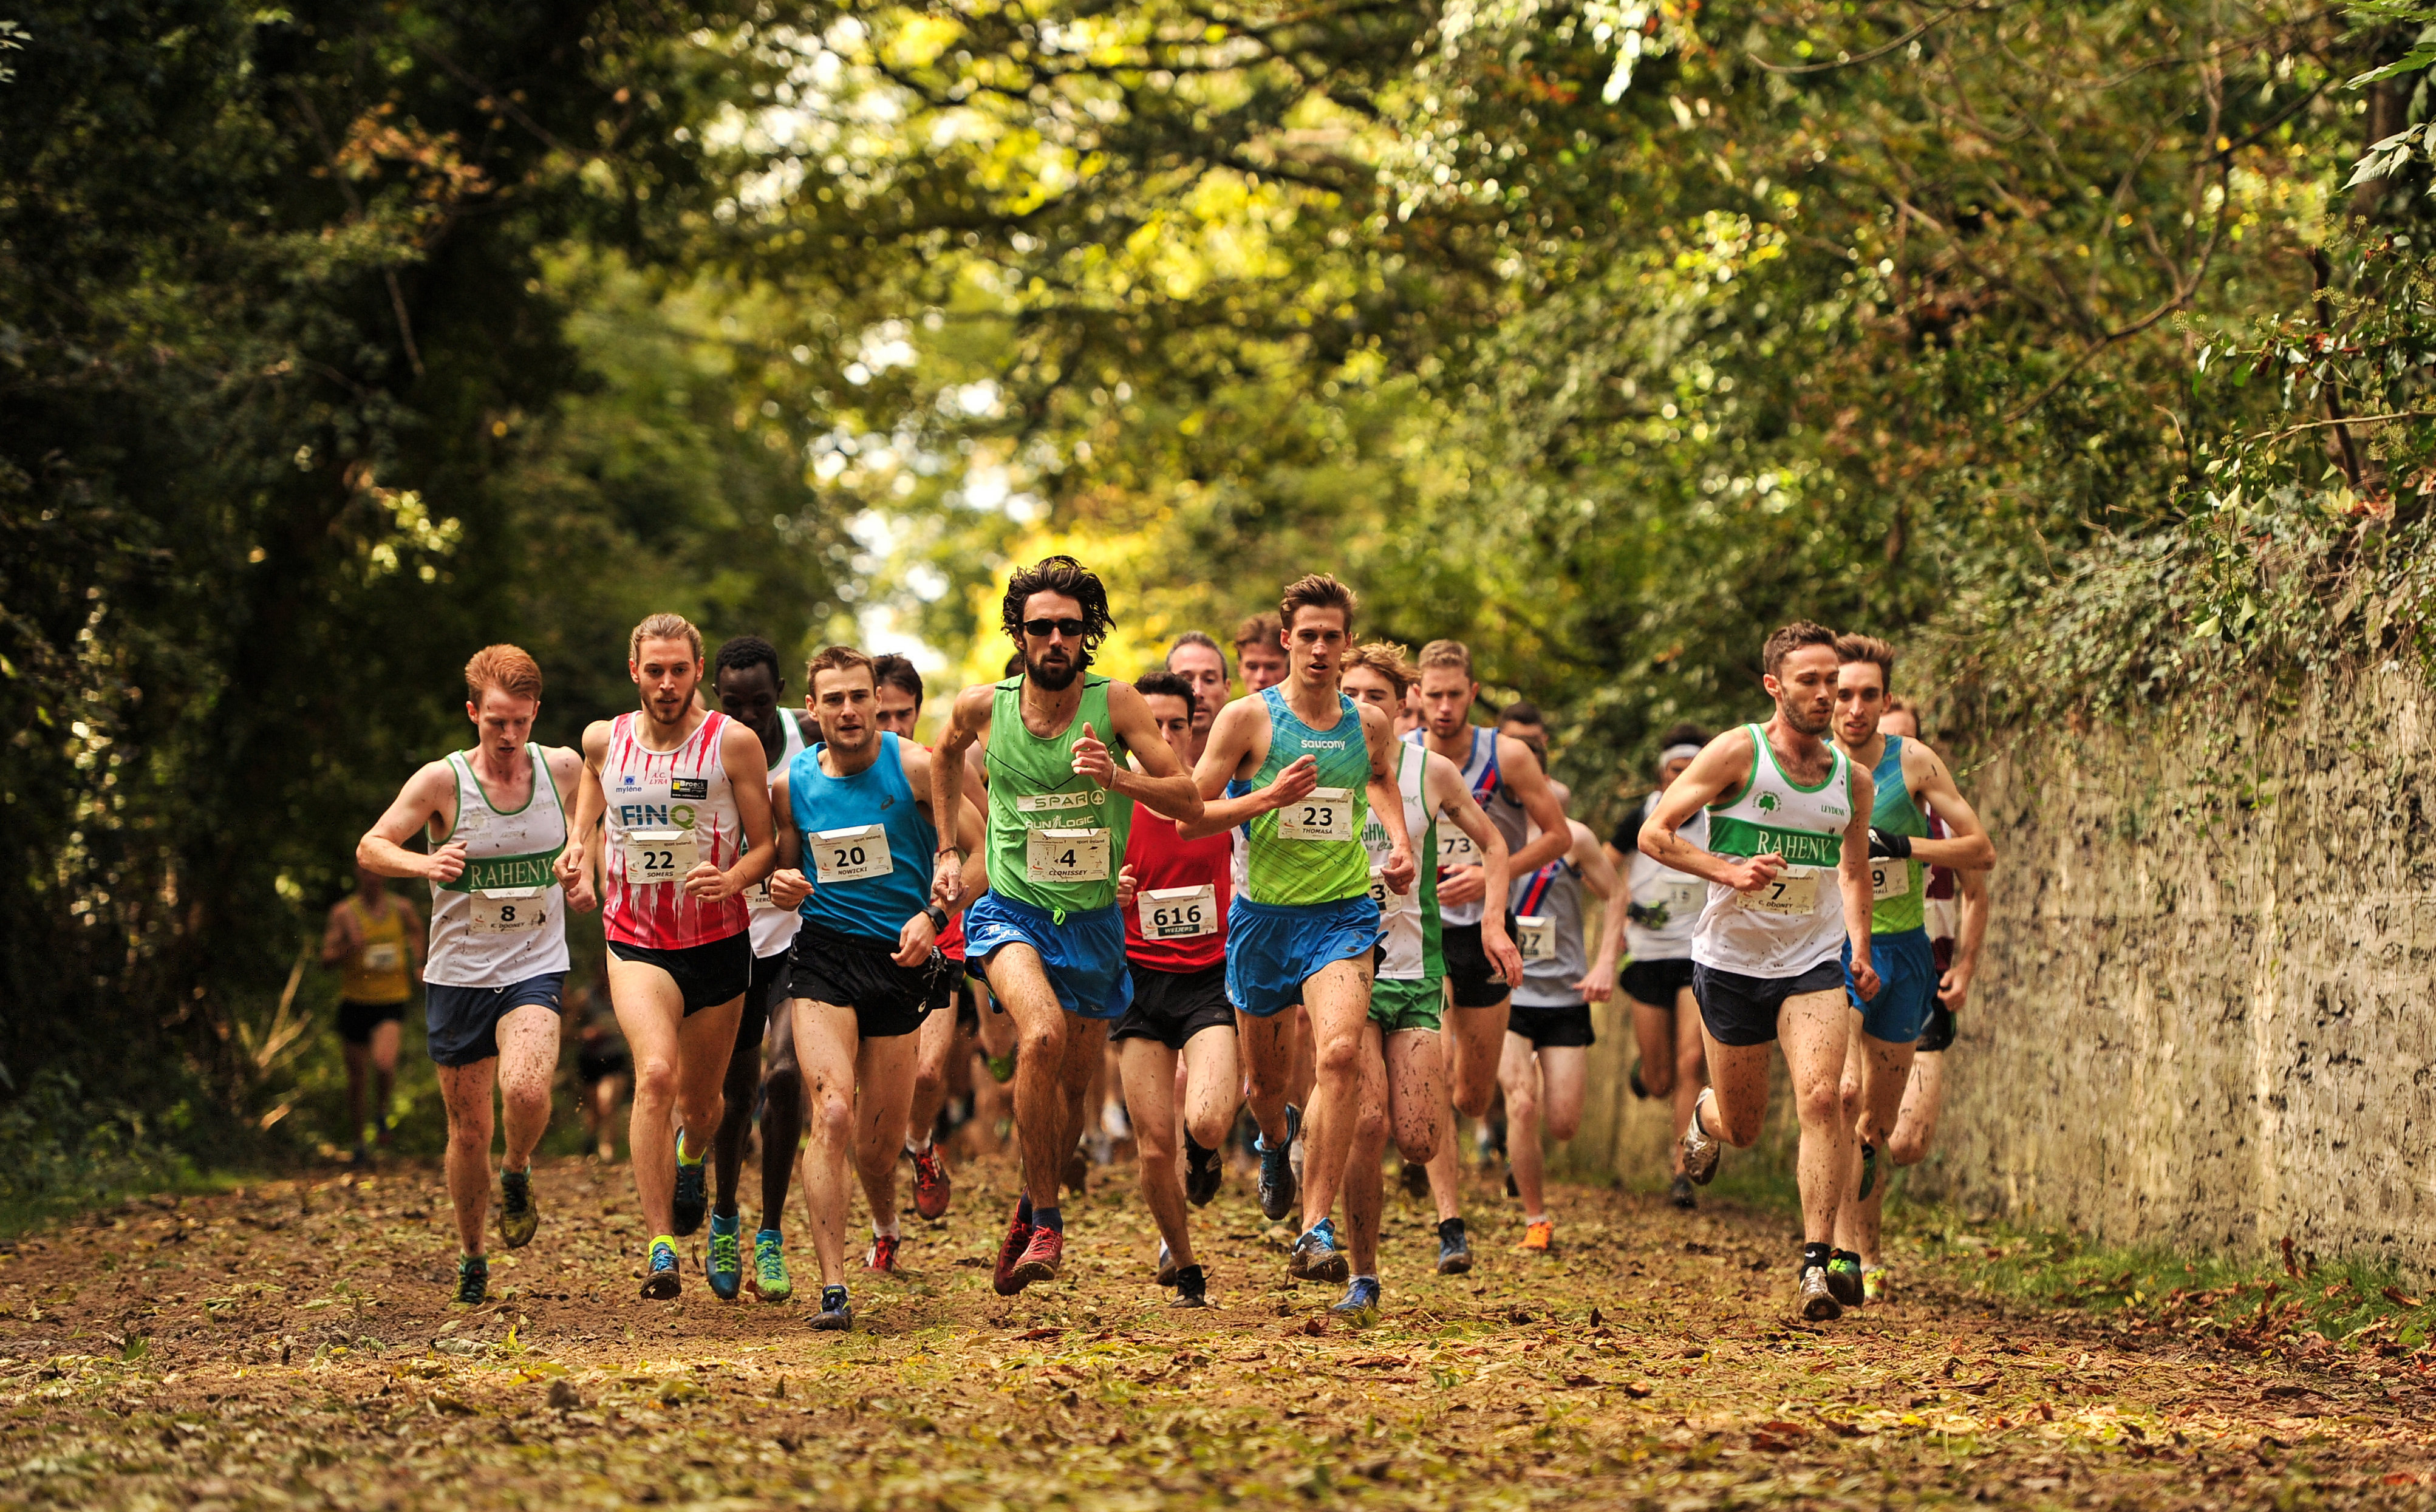 SPAR Autumn Open International Cross Country Festival